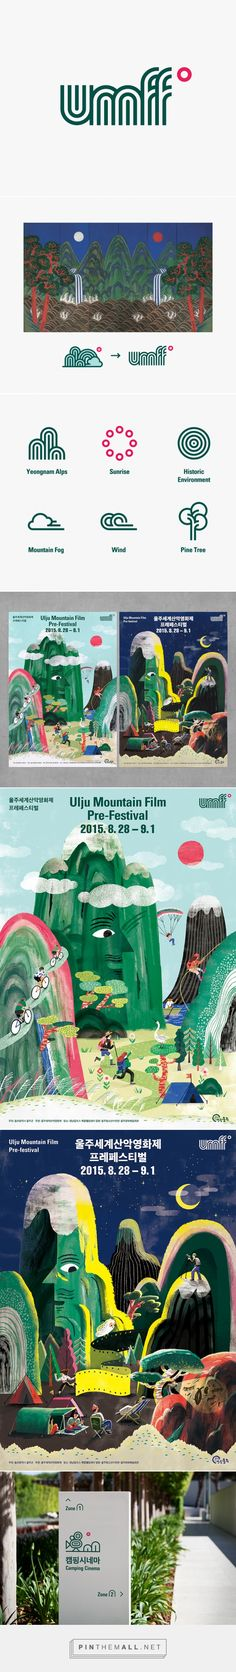 Ulju Mountain Film Festival on Behance - created via https://pinthemall.net